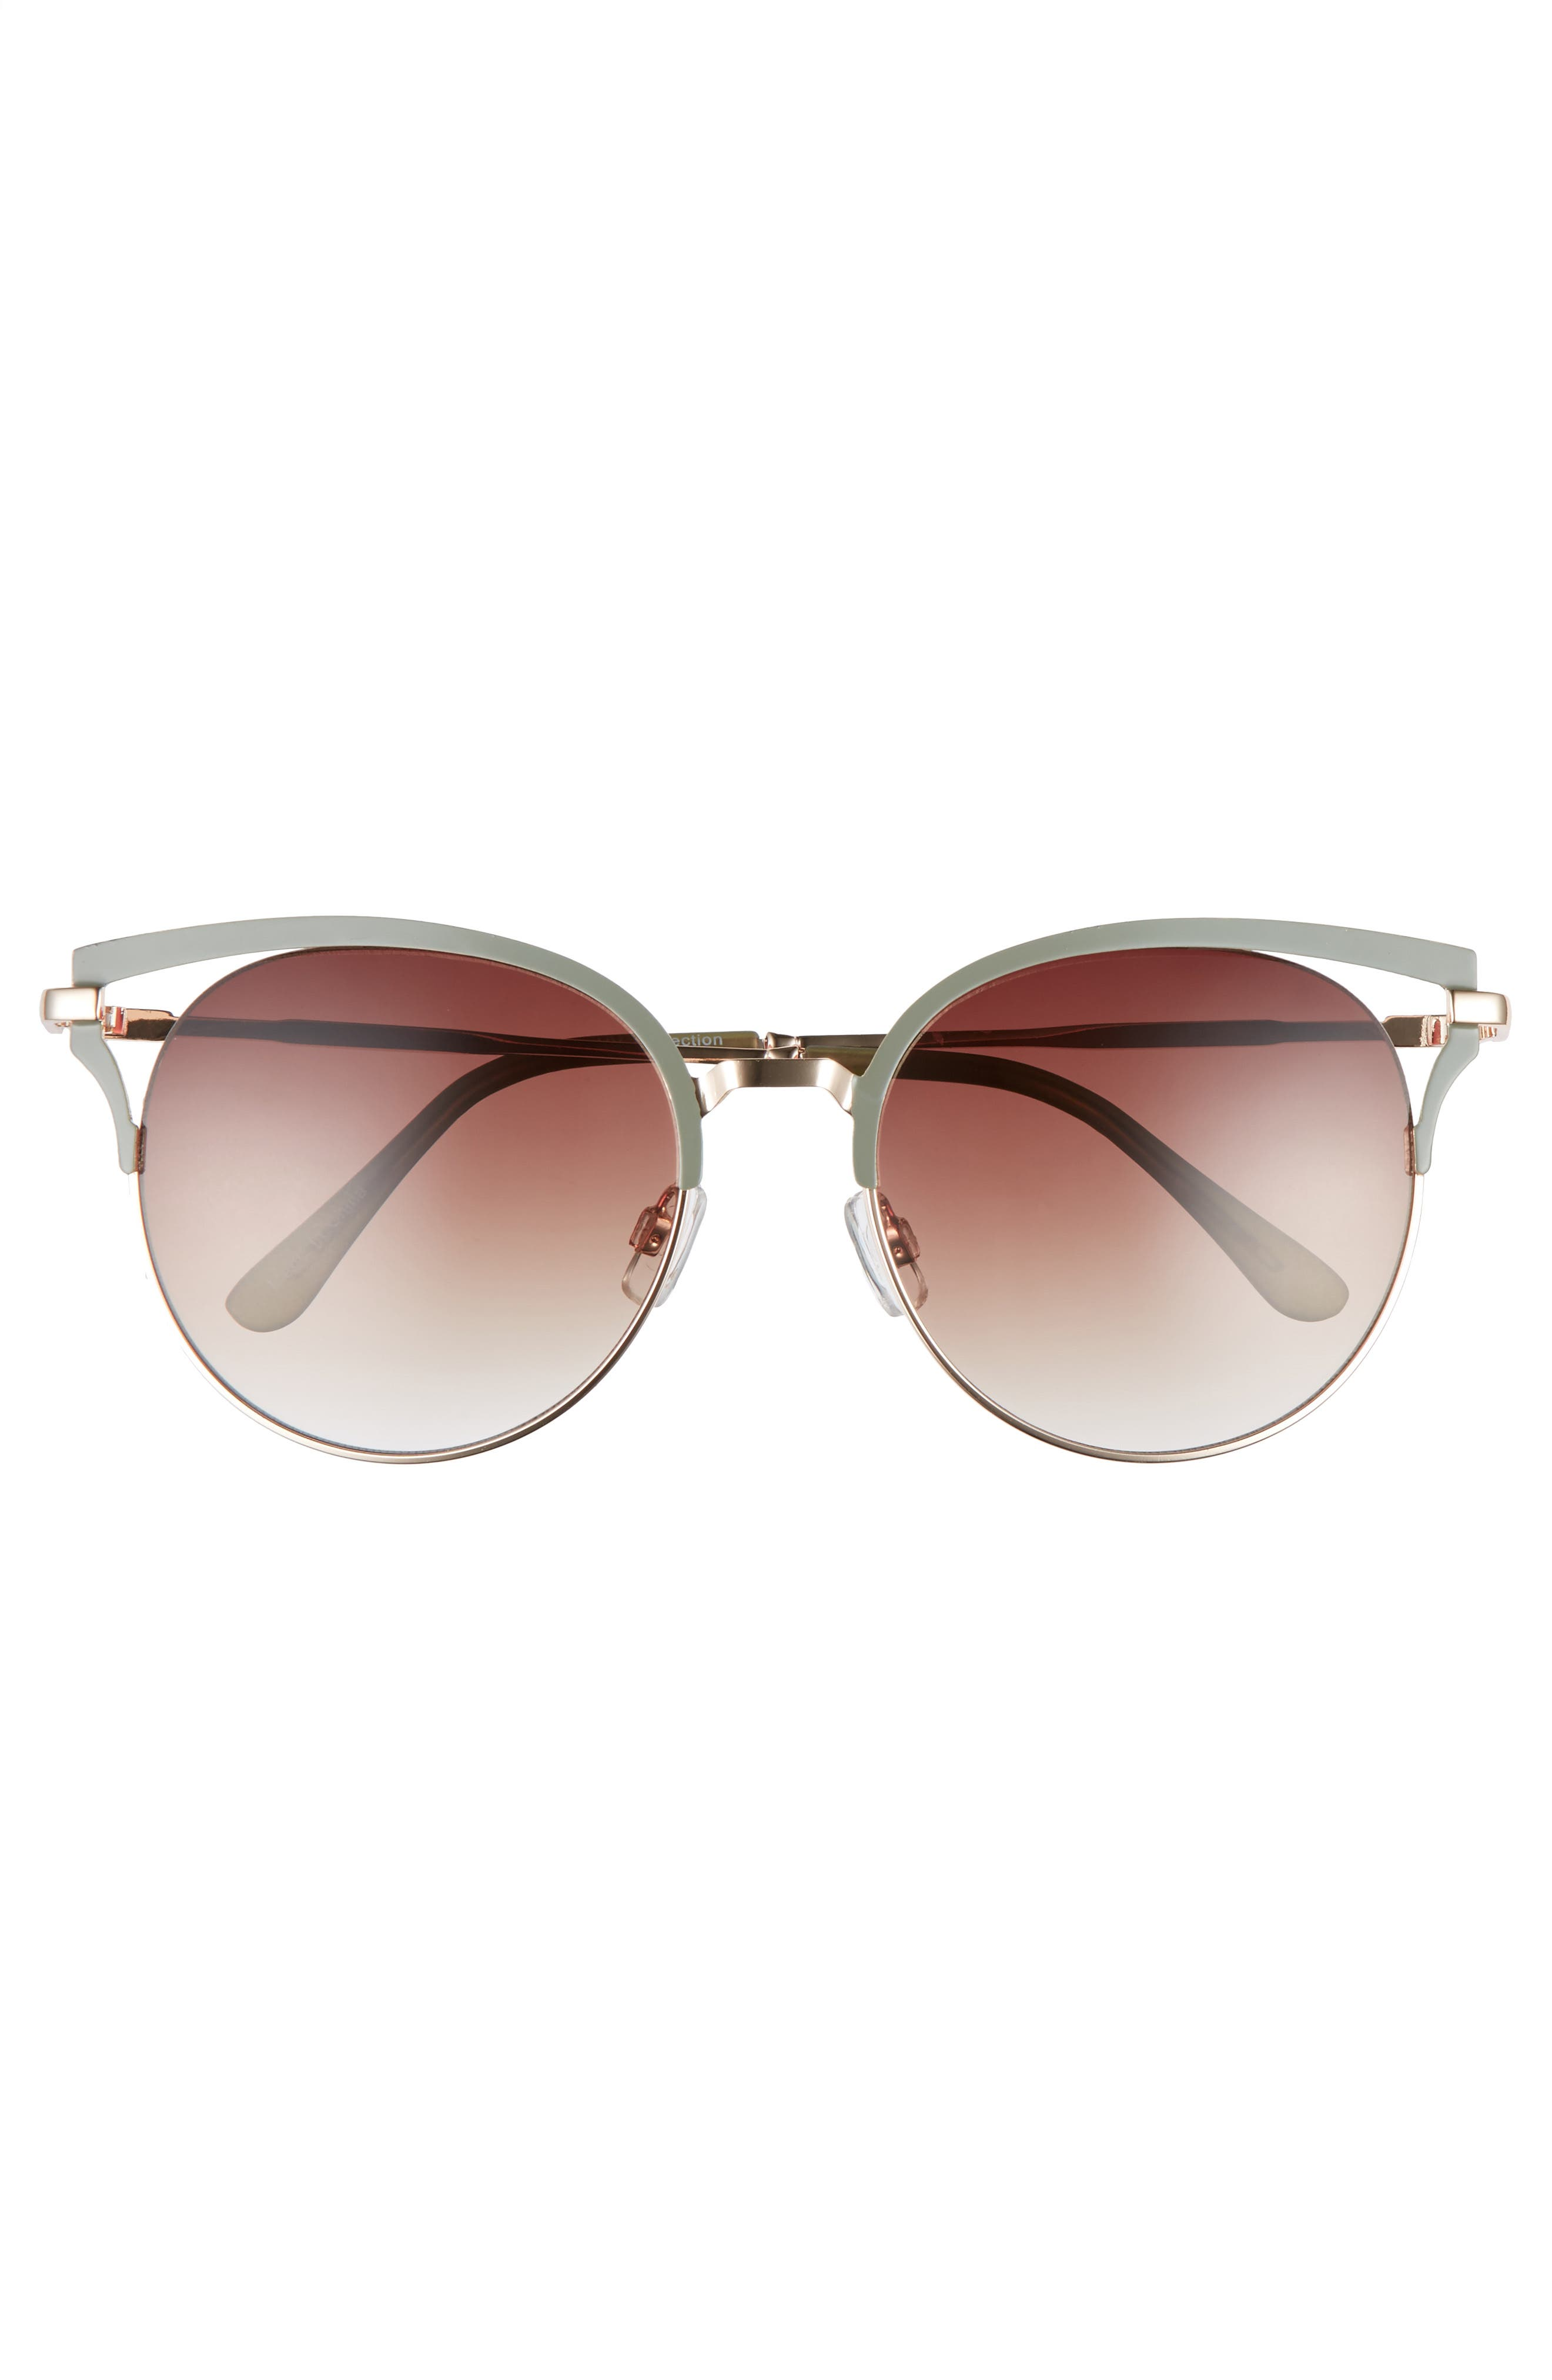 55mm Colored Round Sunglasses,                             Alternate thumbnail 3, color,                             300